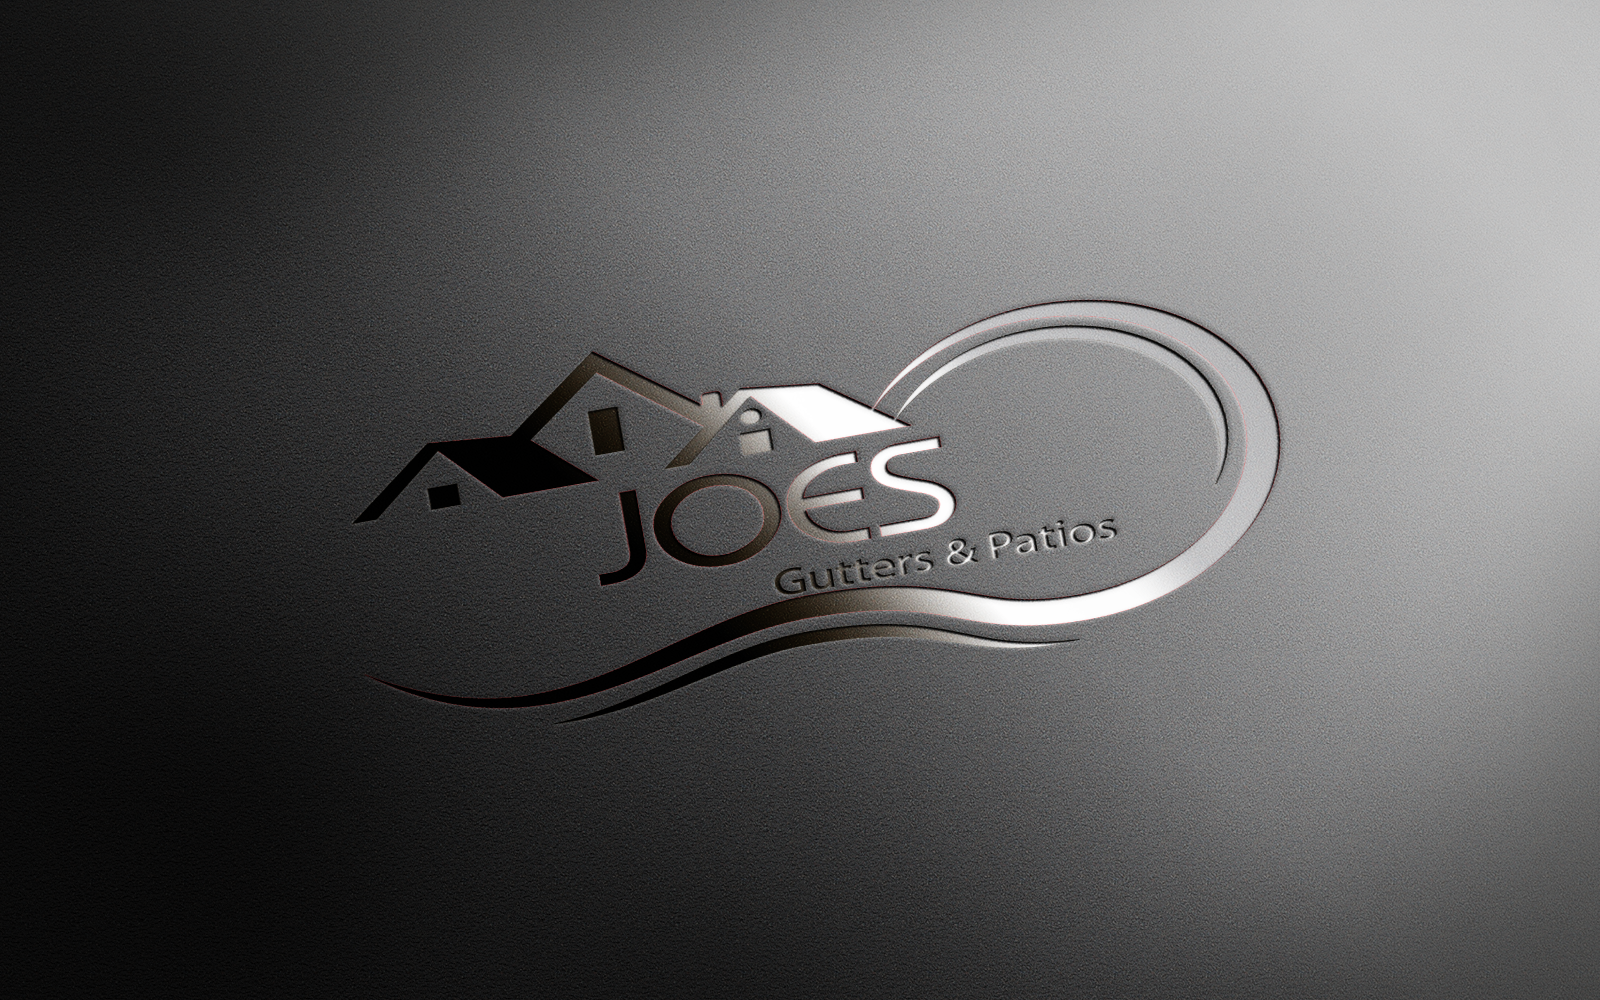 Logo Design by Private User - Entry No. 32 in the Logo Design Contest Imaginative Logo Design for Joes Gutters & Patios.